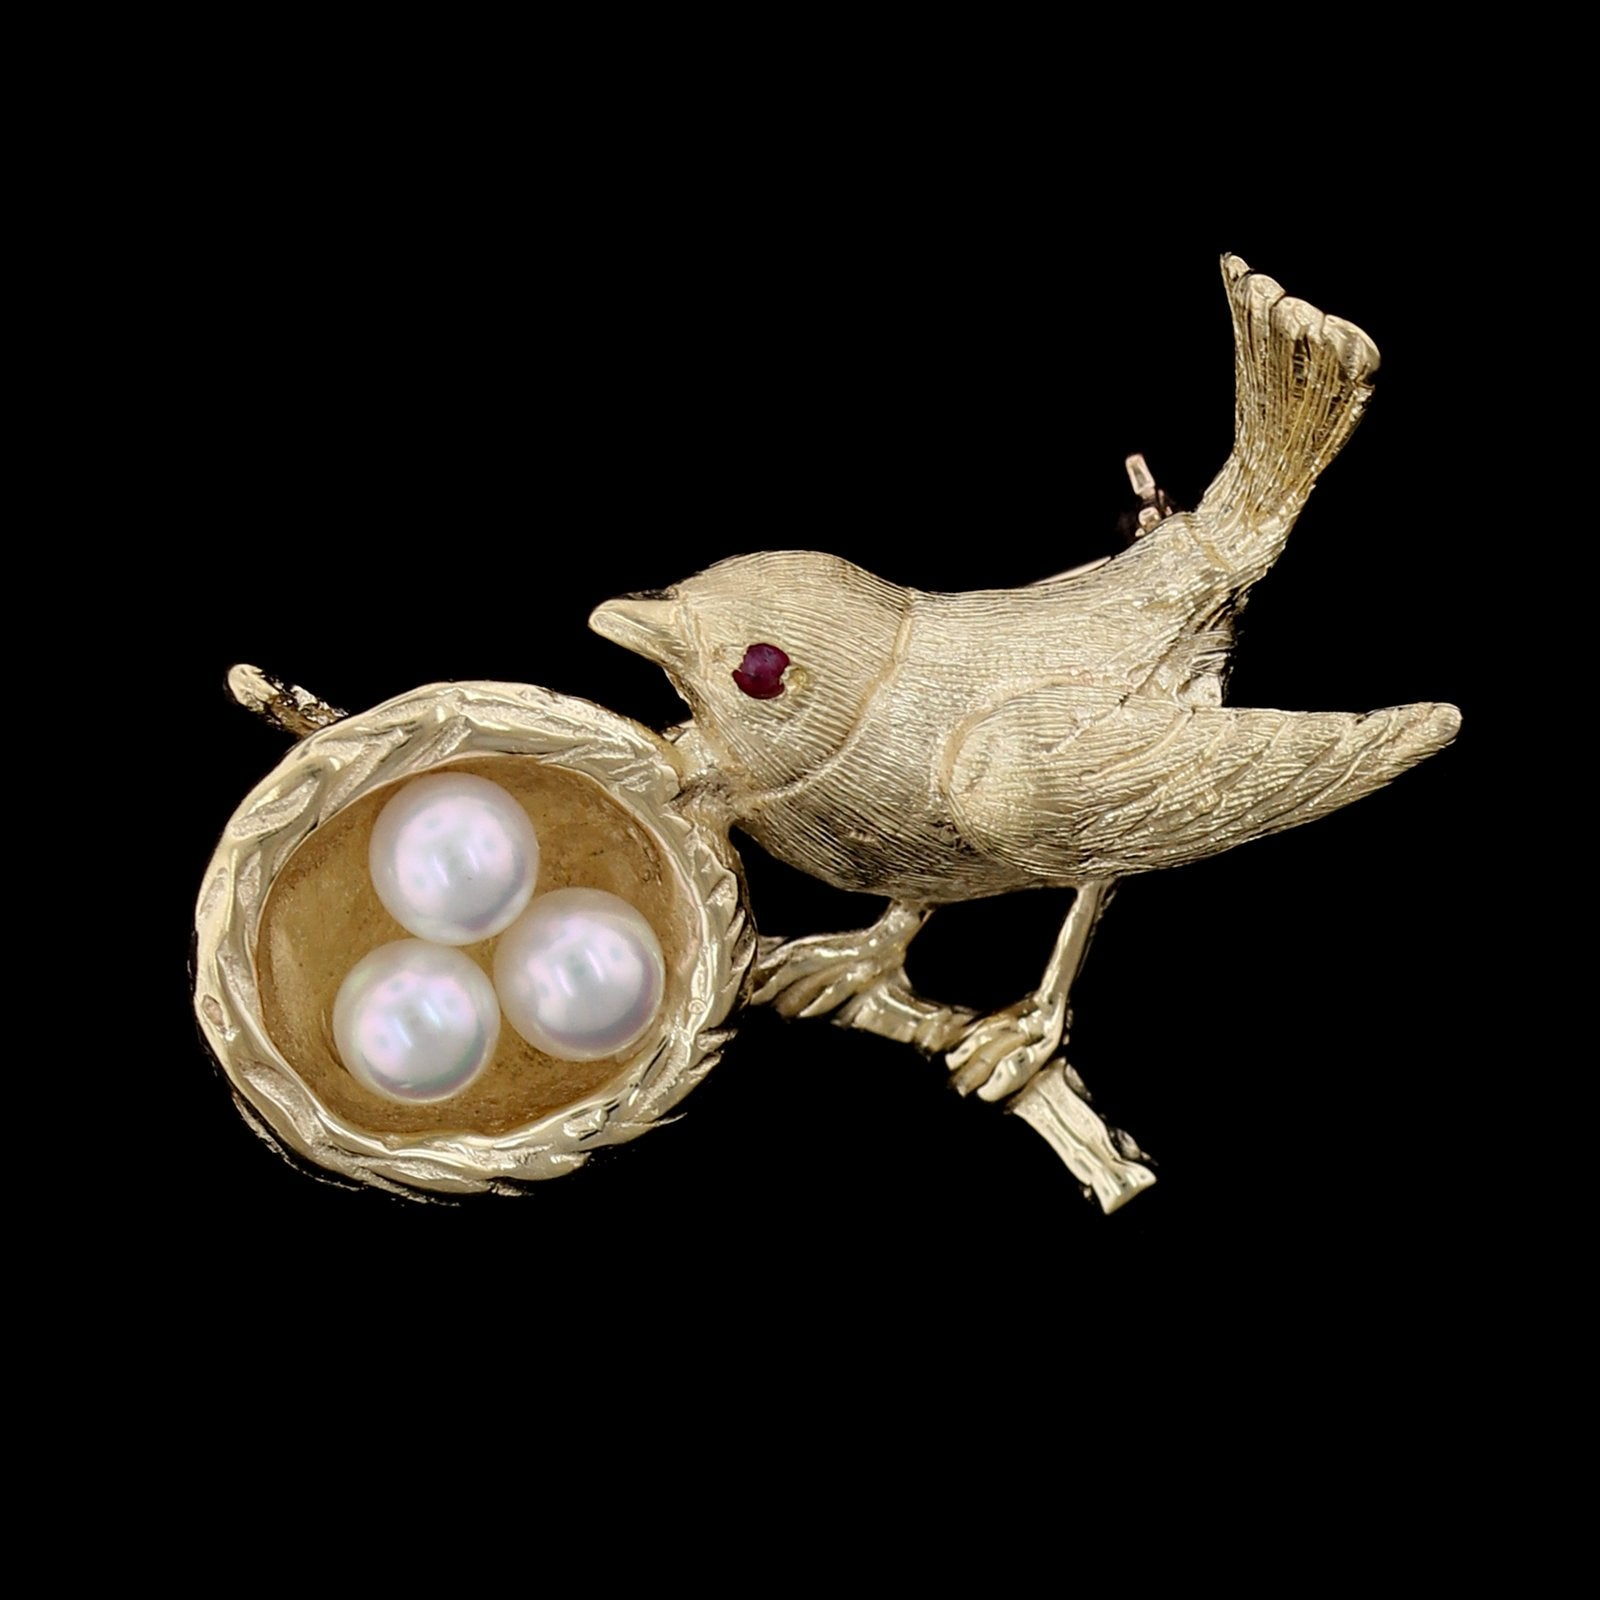 14K Yellow Gold Cultured Pearl and Ruby Bird with Nest Pin